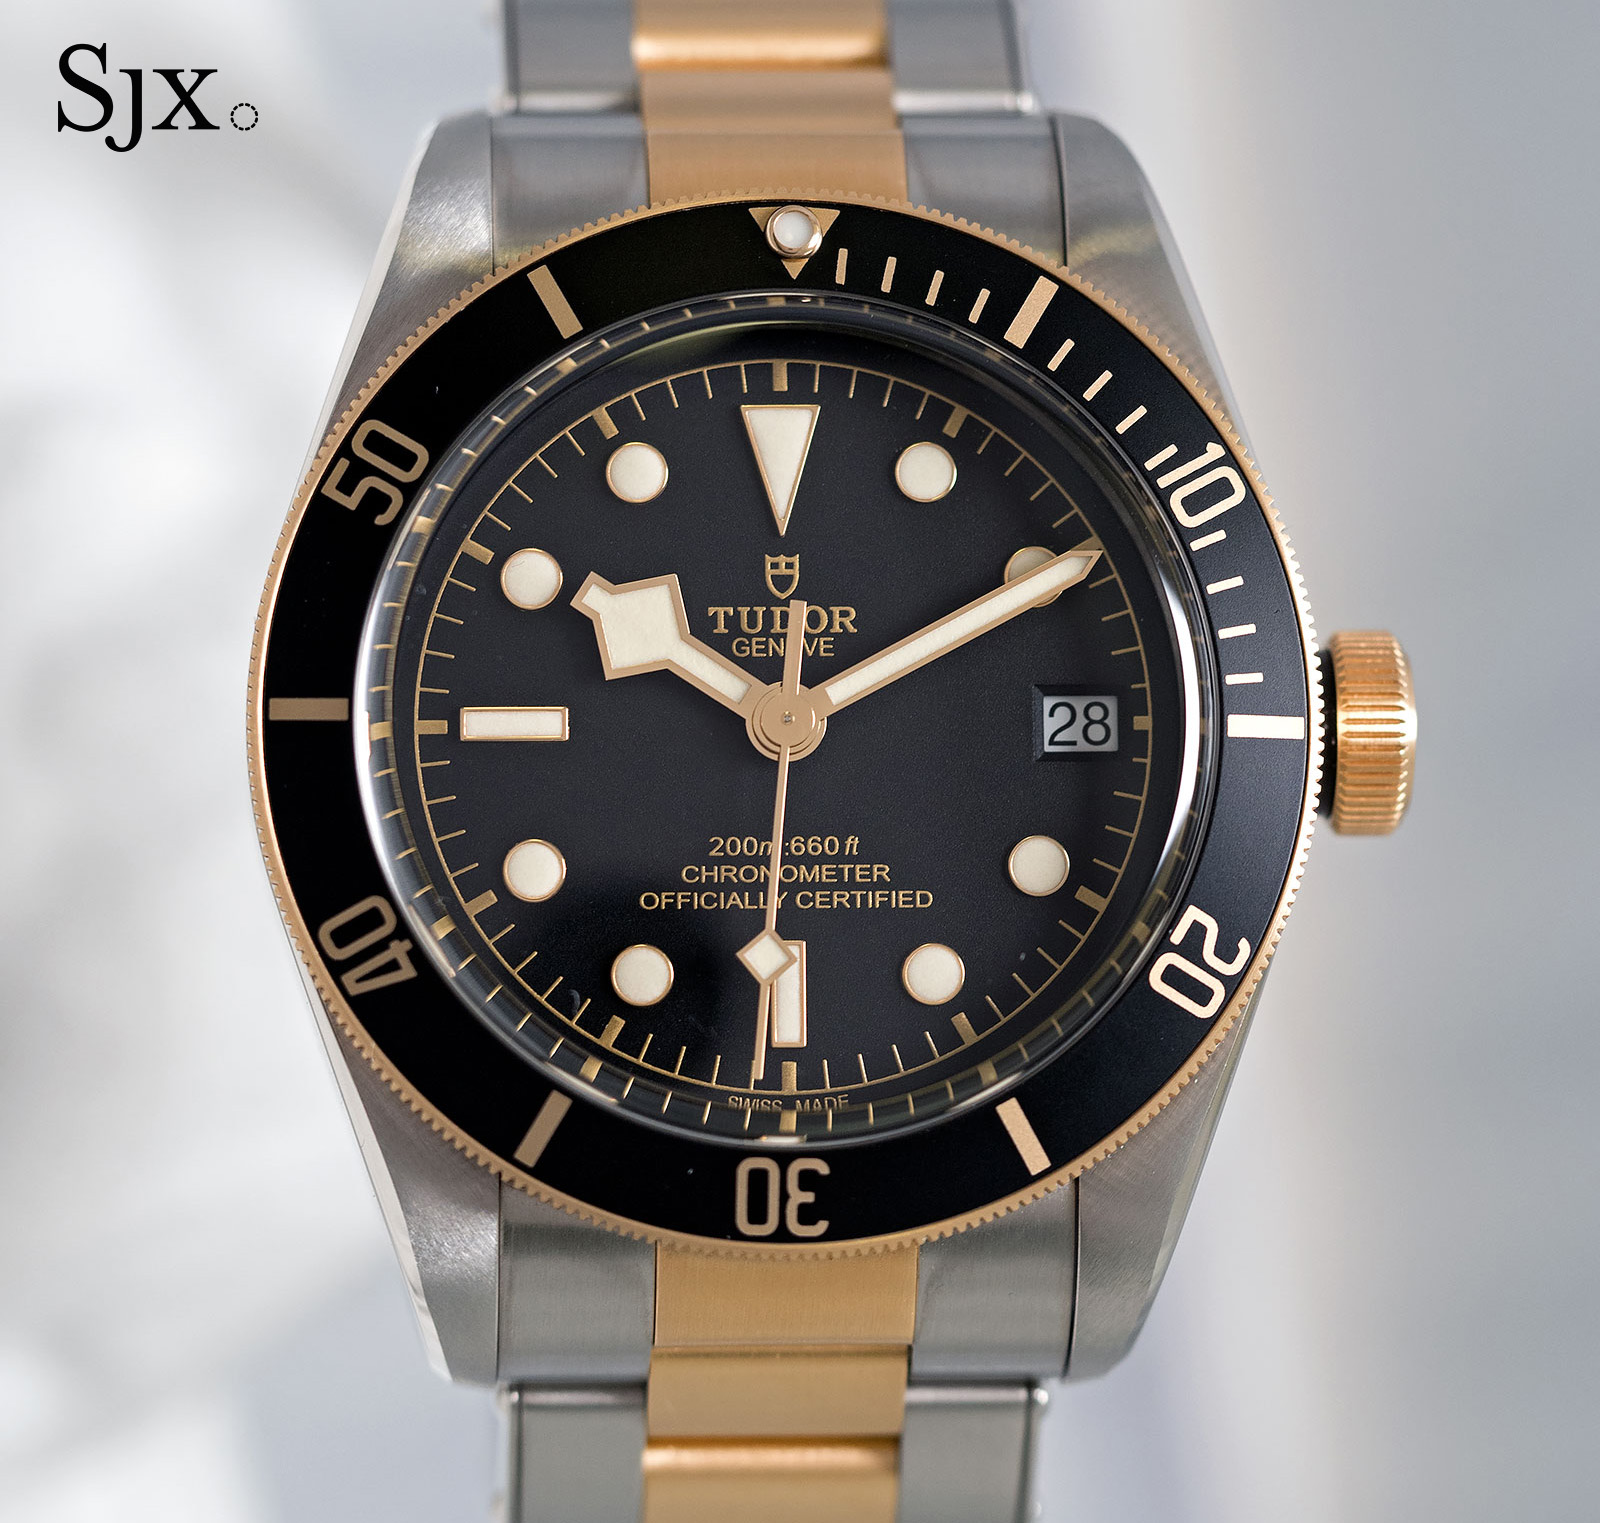 Tudor Black Bay S&G 79733N-1